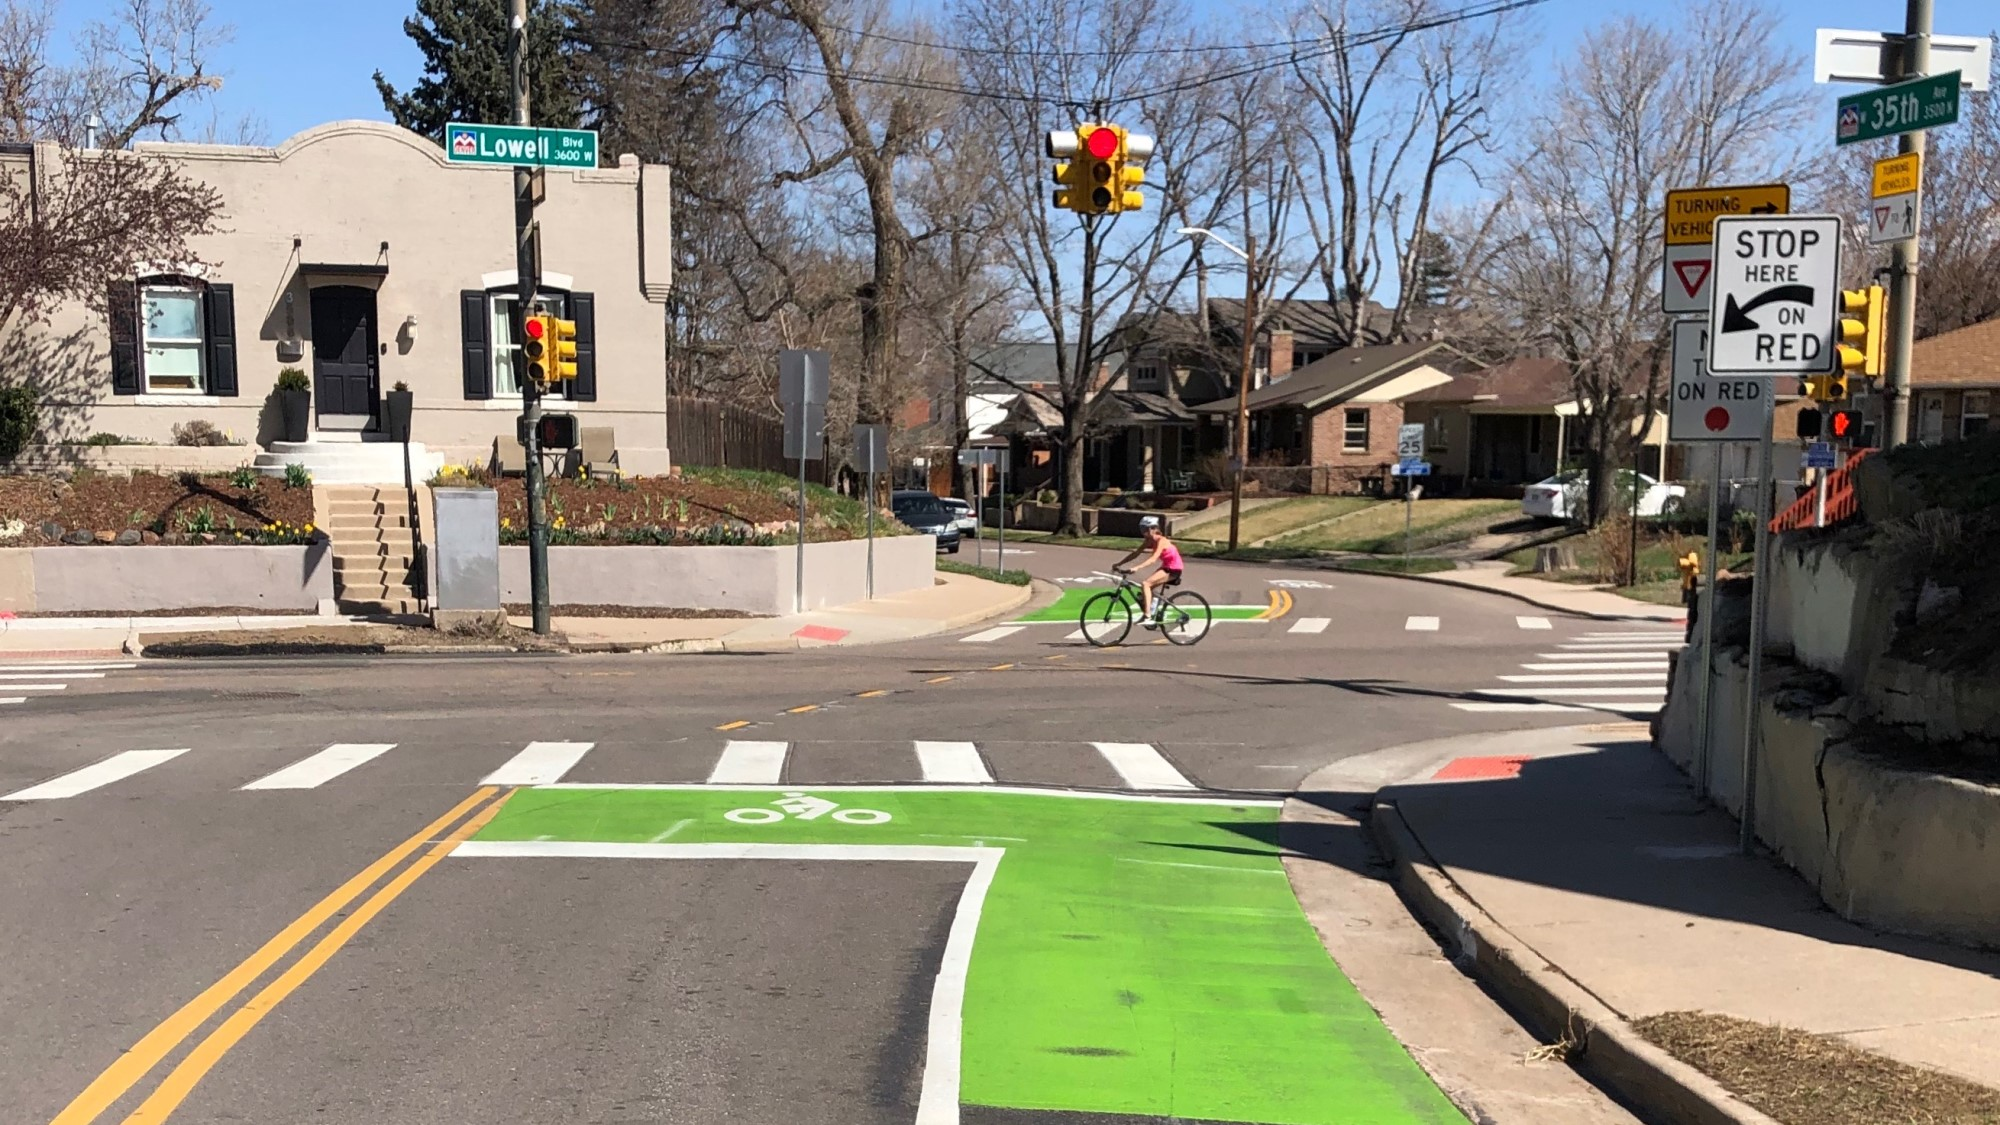 photo of cyclist riding through the intersection of 35th and Lowell in Denver